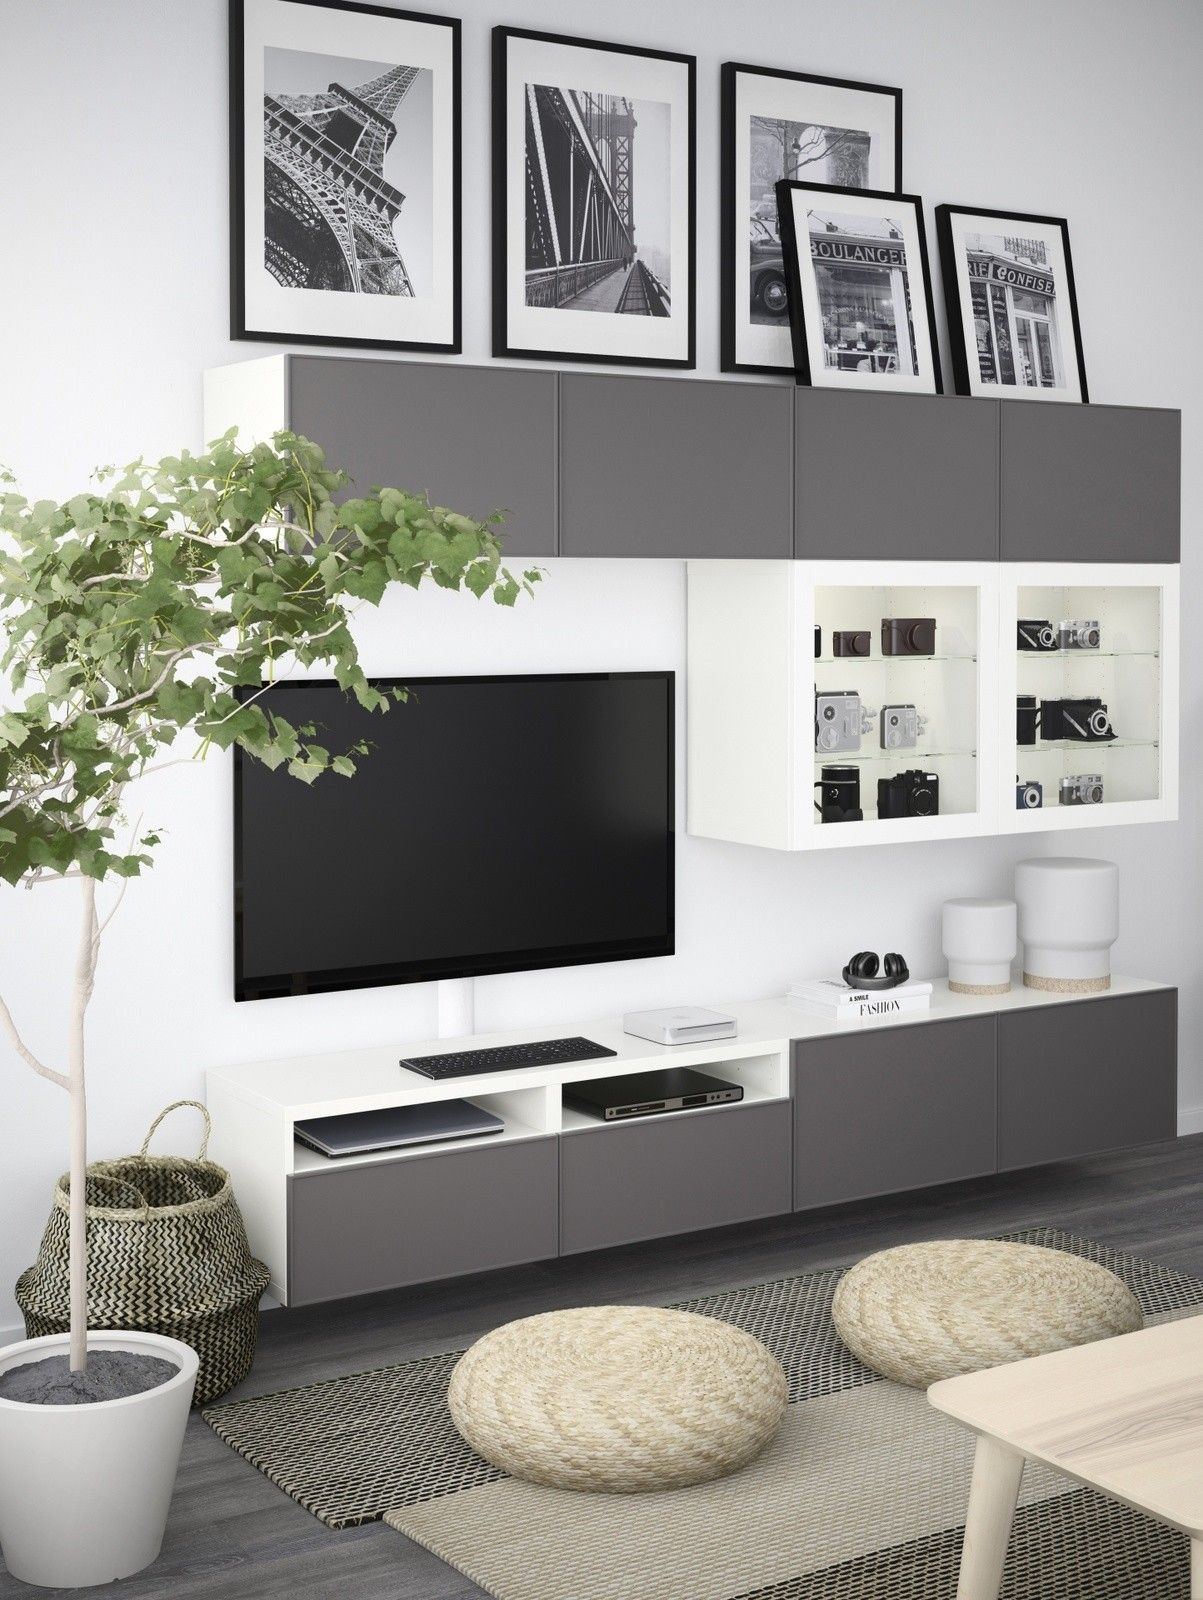 mur besta mieszkanko pinterest living rooms tvs and room. Black Bedroom Furniture Sets. Home Design Ideas